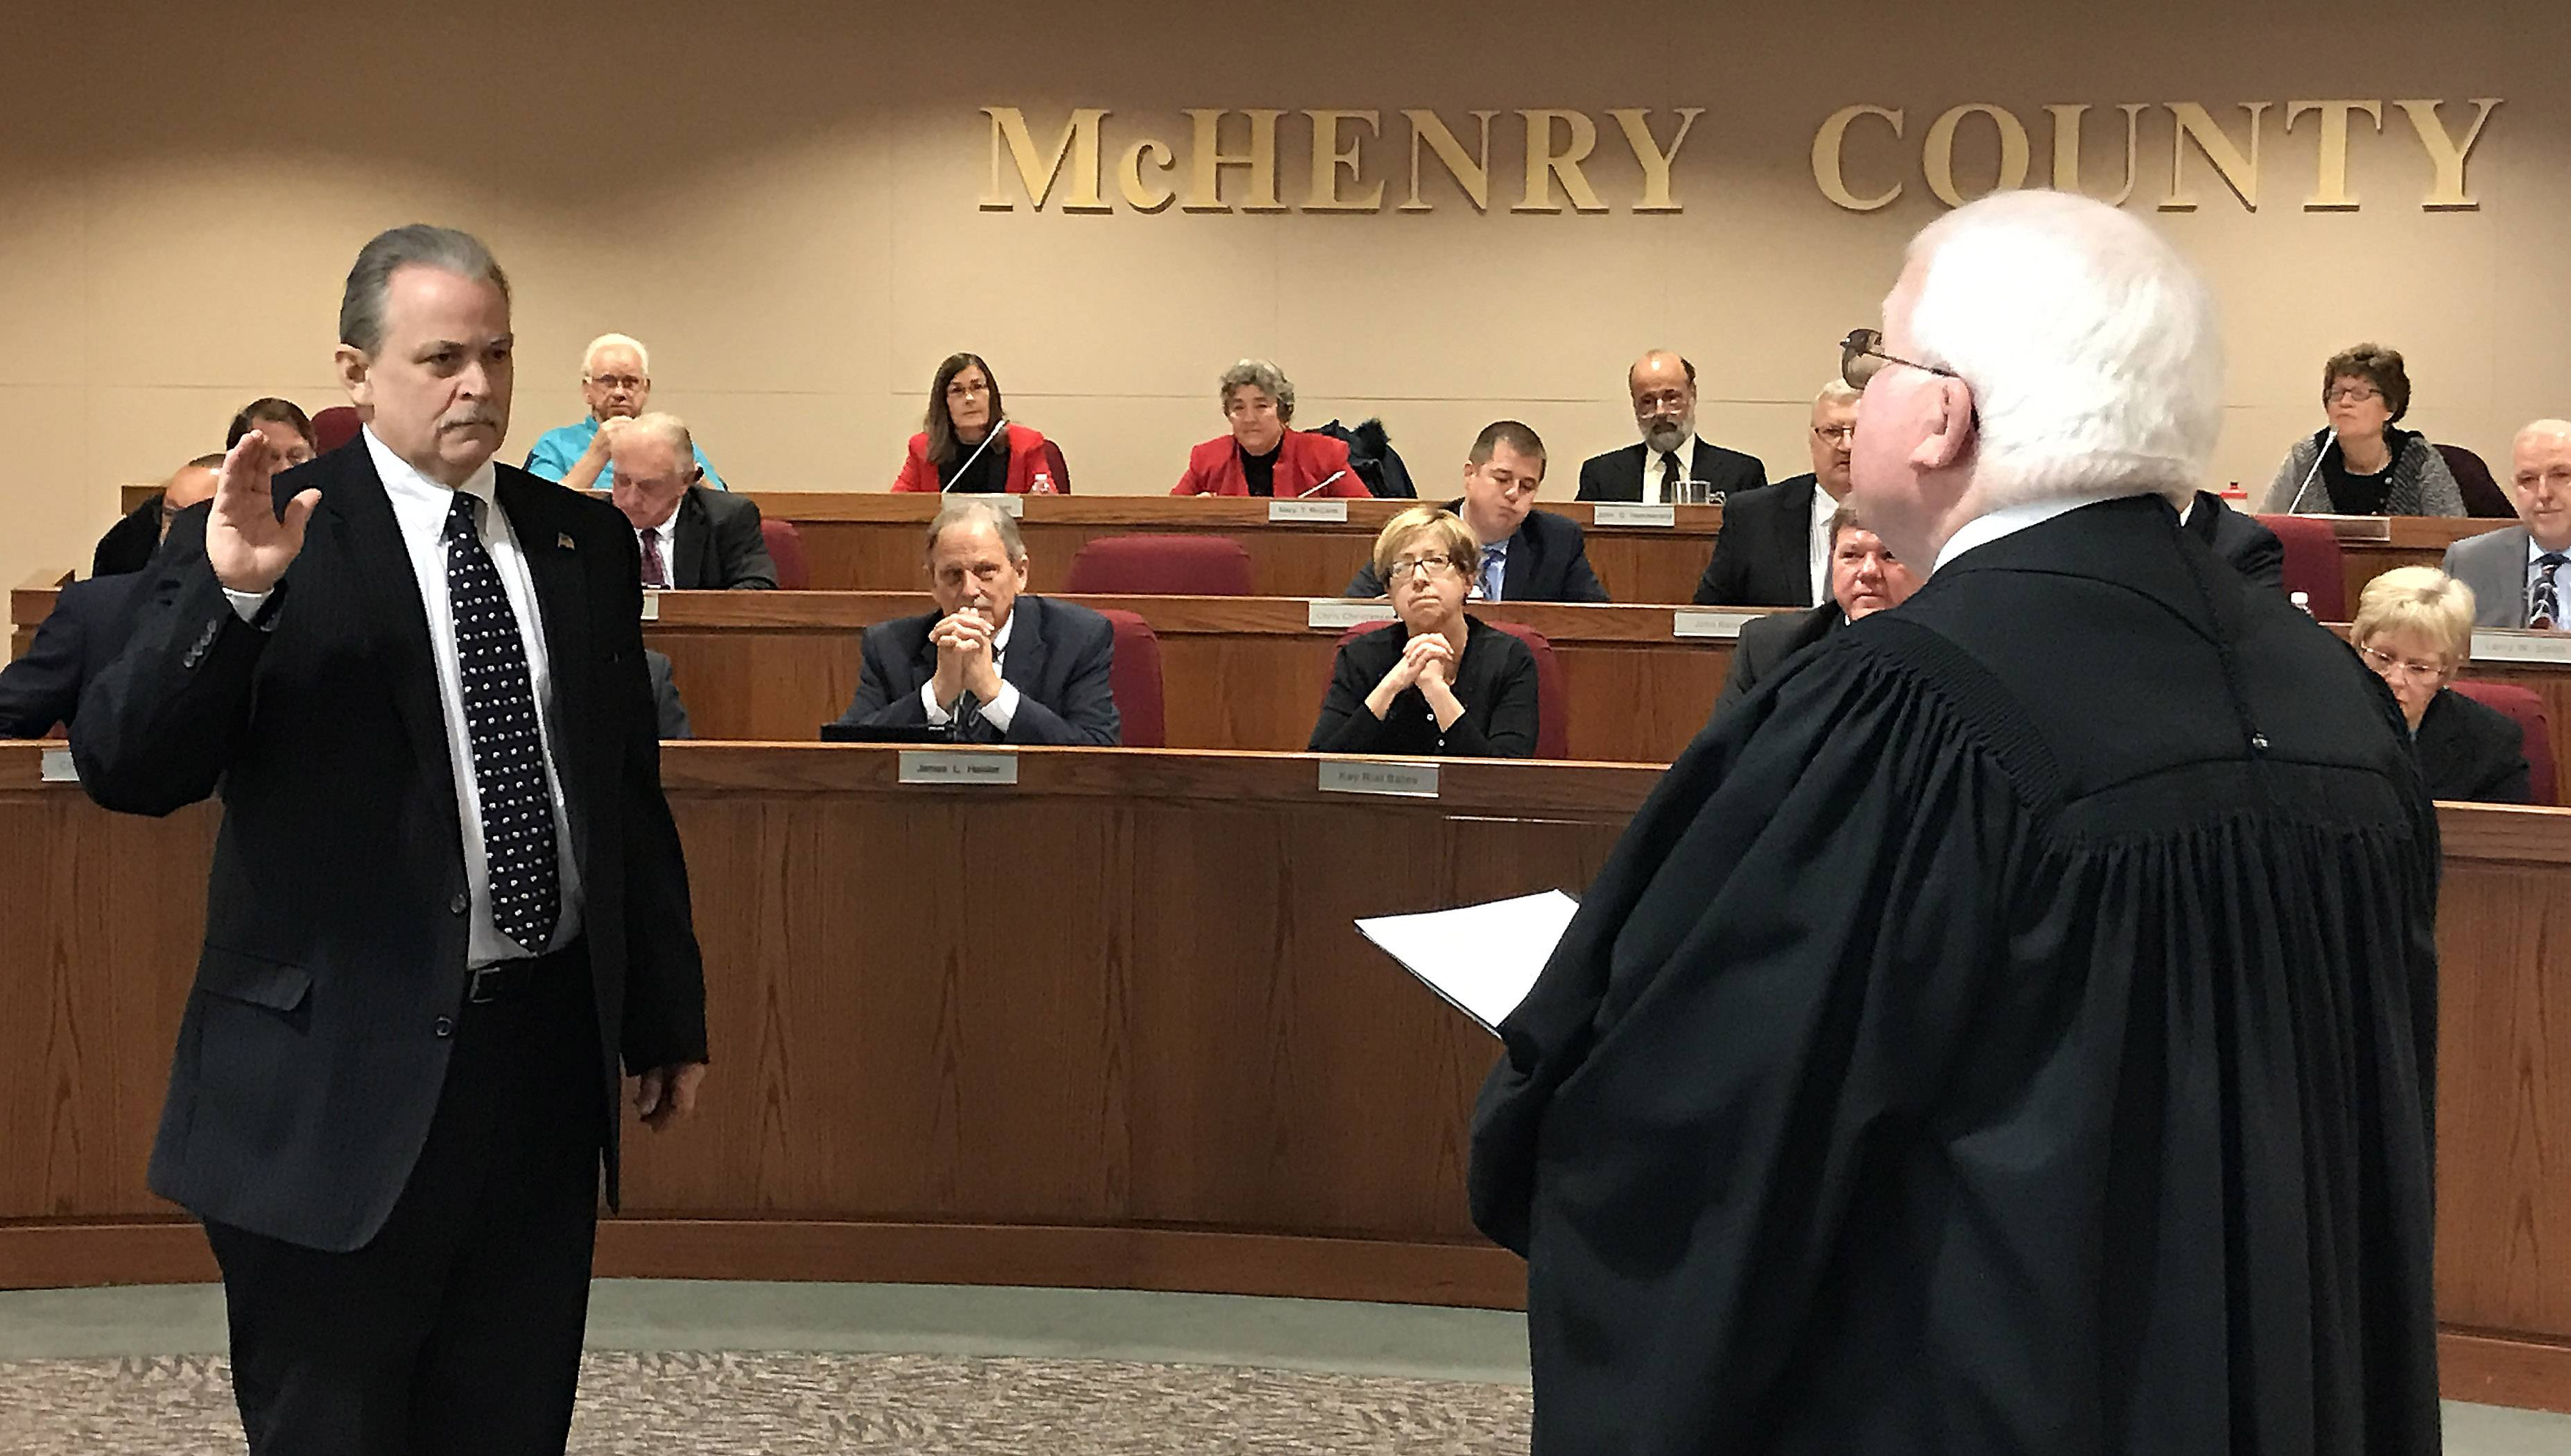 McHenry County Board member Jeff Thorsen is sworn in Monday as board vice chairman by Chief Judge Michael Sullivan.